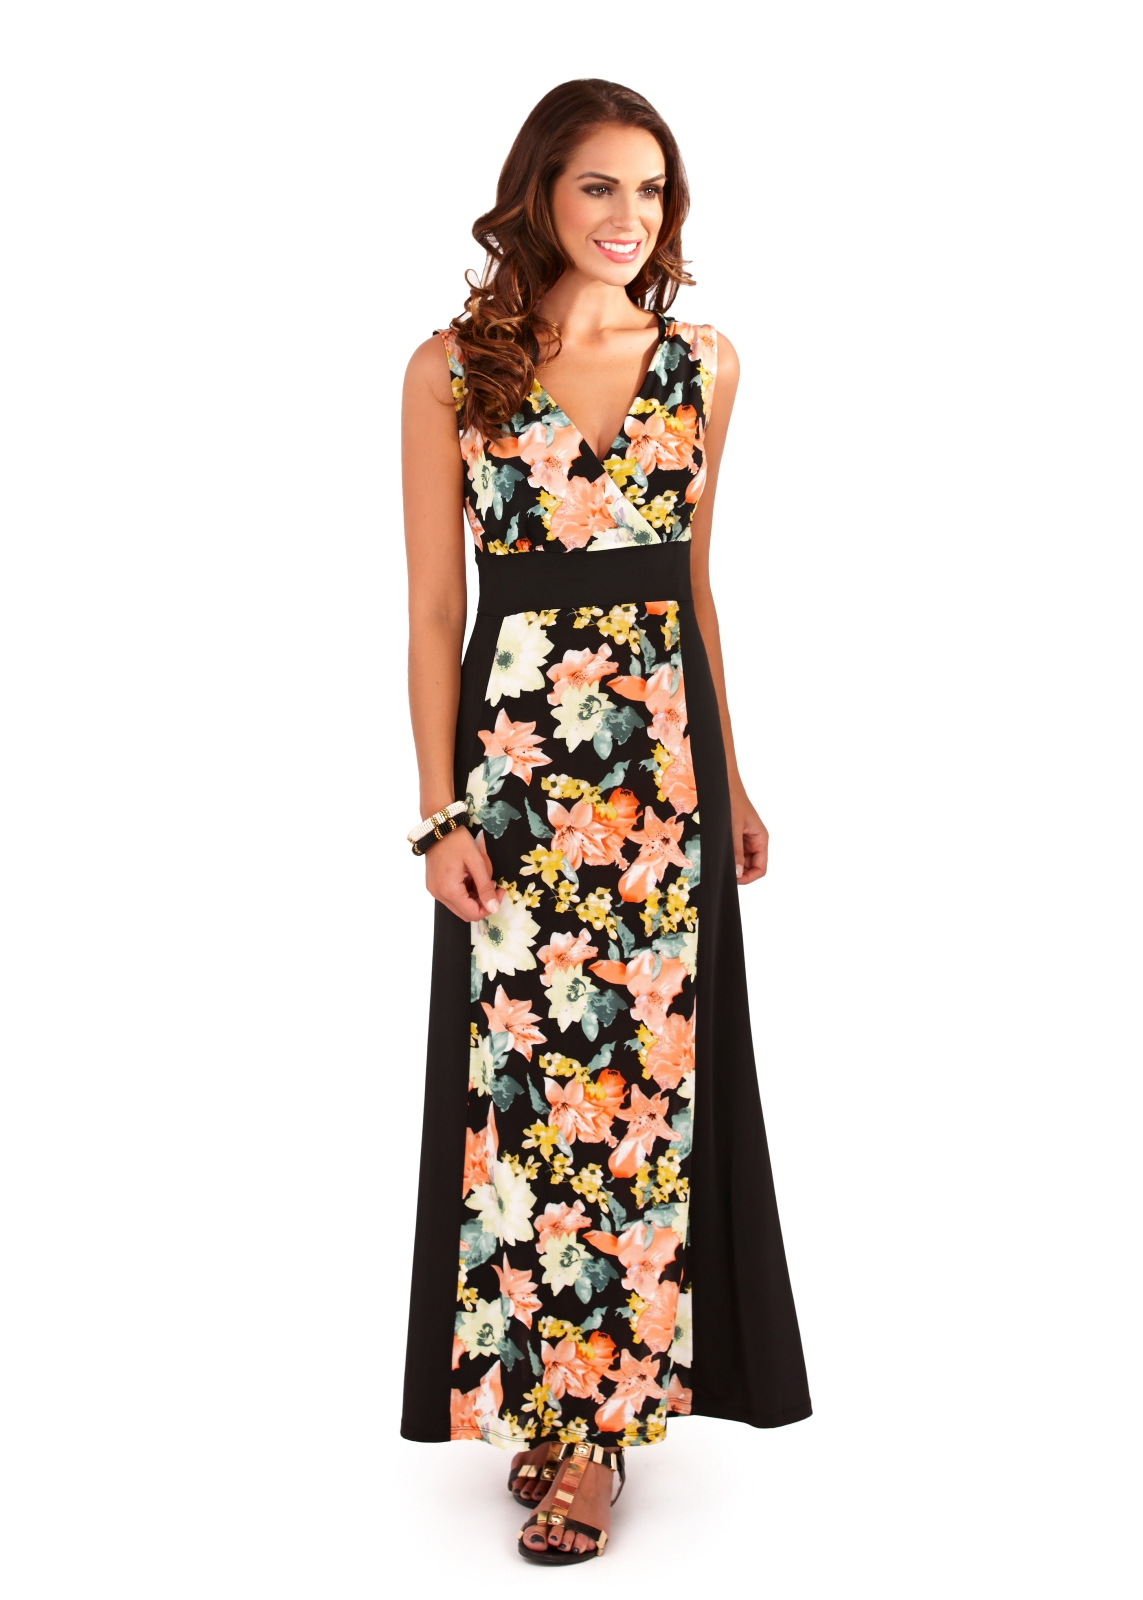 499dc18b6e58 Womens Maxi Dress Full Length Floral Stretch Panel Summer Dress ...